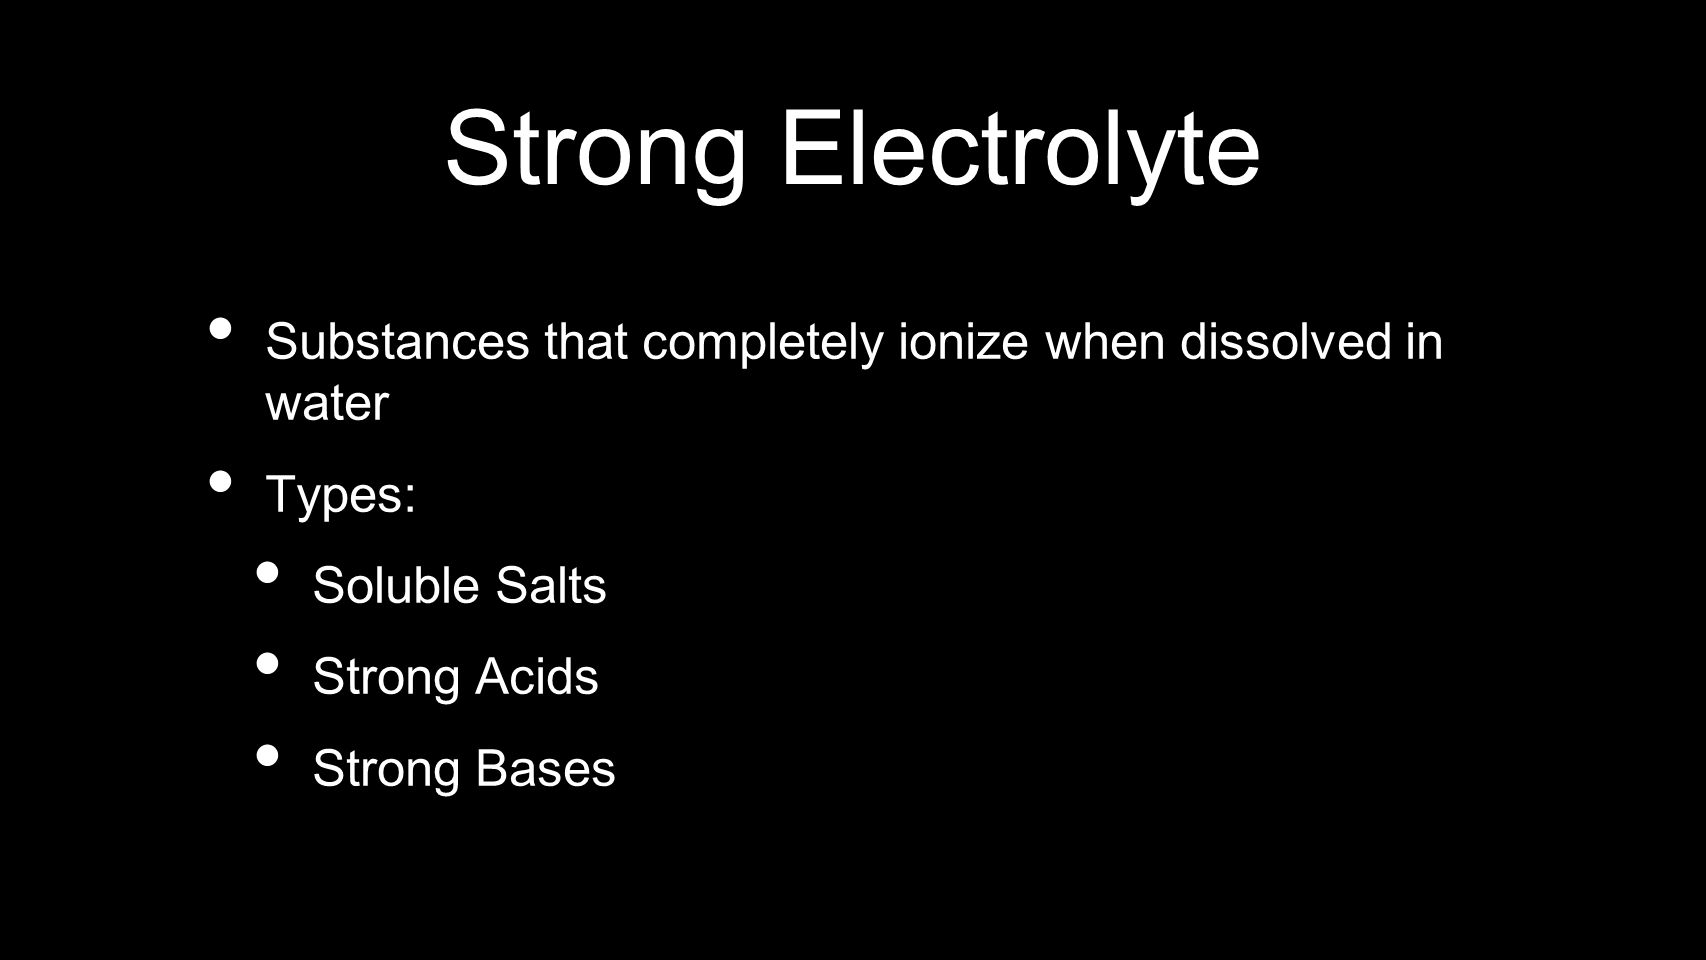 Strong Electrolyte Substances that completely ionize when dissolved in water. Types: Soluble Salts.